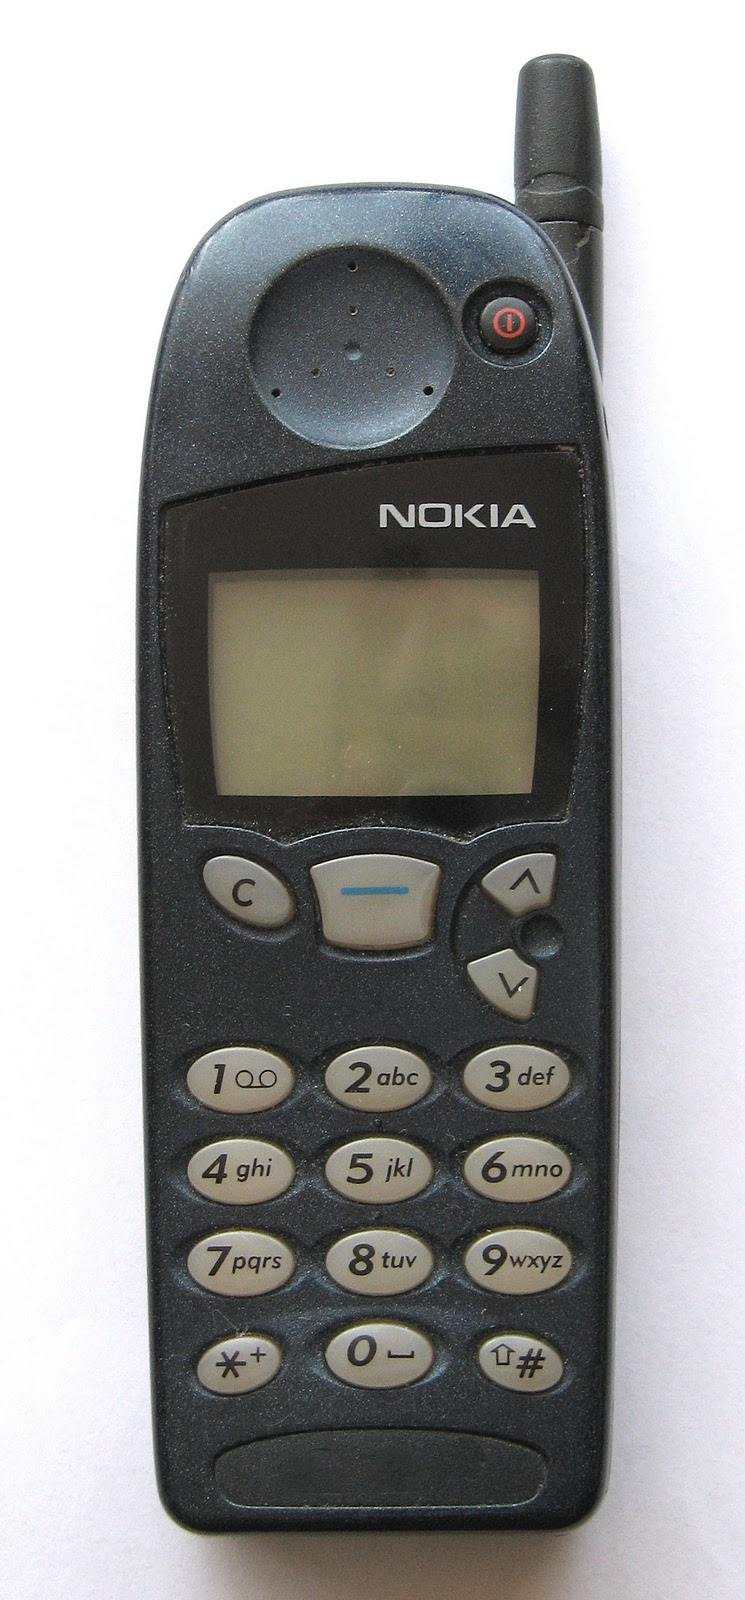 Nostalgia Trip All The Cellphones I Have Ever Owned Nokia 3310 Troubleshooting Geek Afterglow